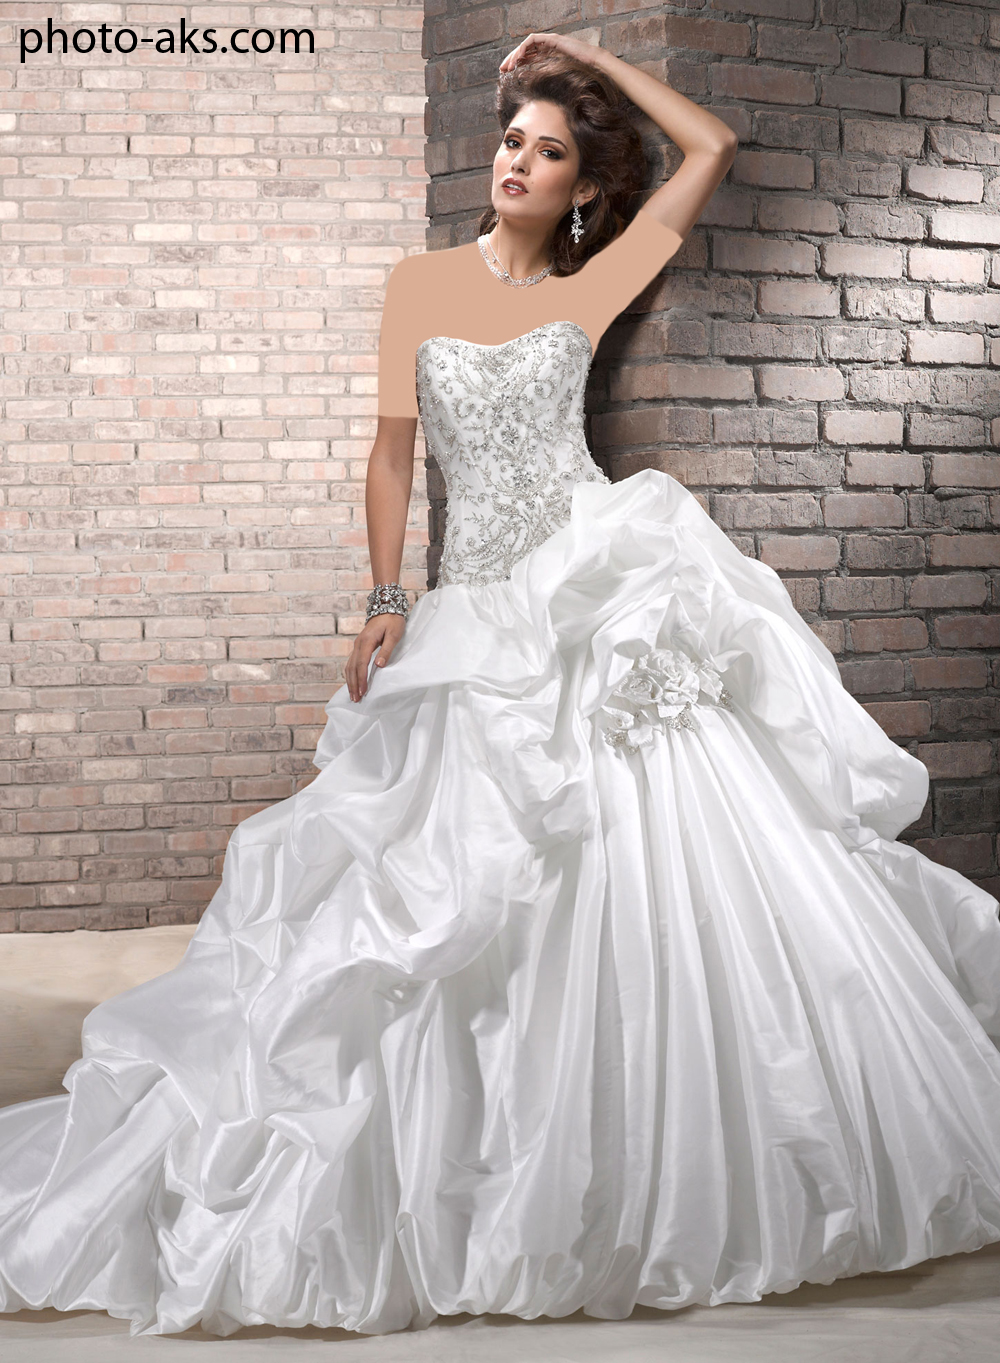 http://pic.photo-aks.com/photo/images/fashion/wedding-dresses/large/Wedding-Dresses-2014.jpg